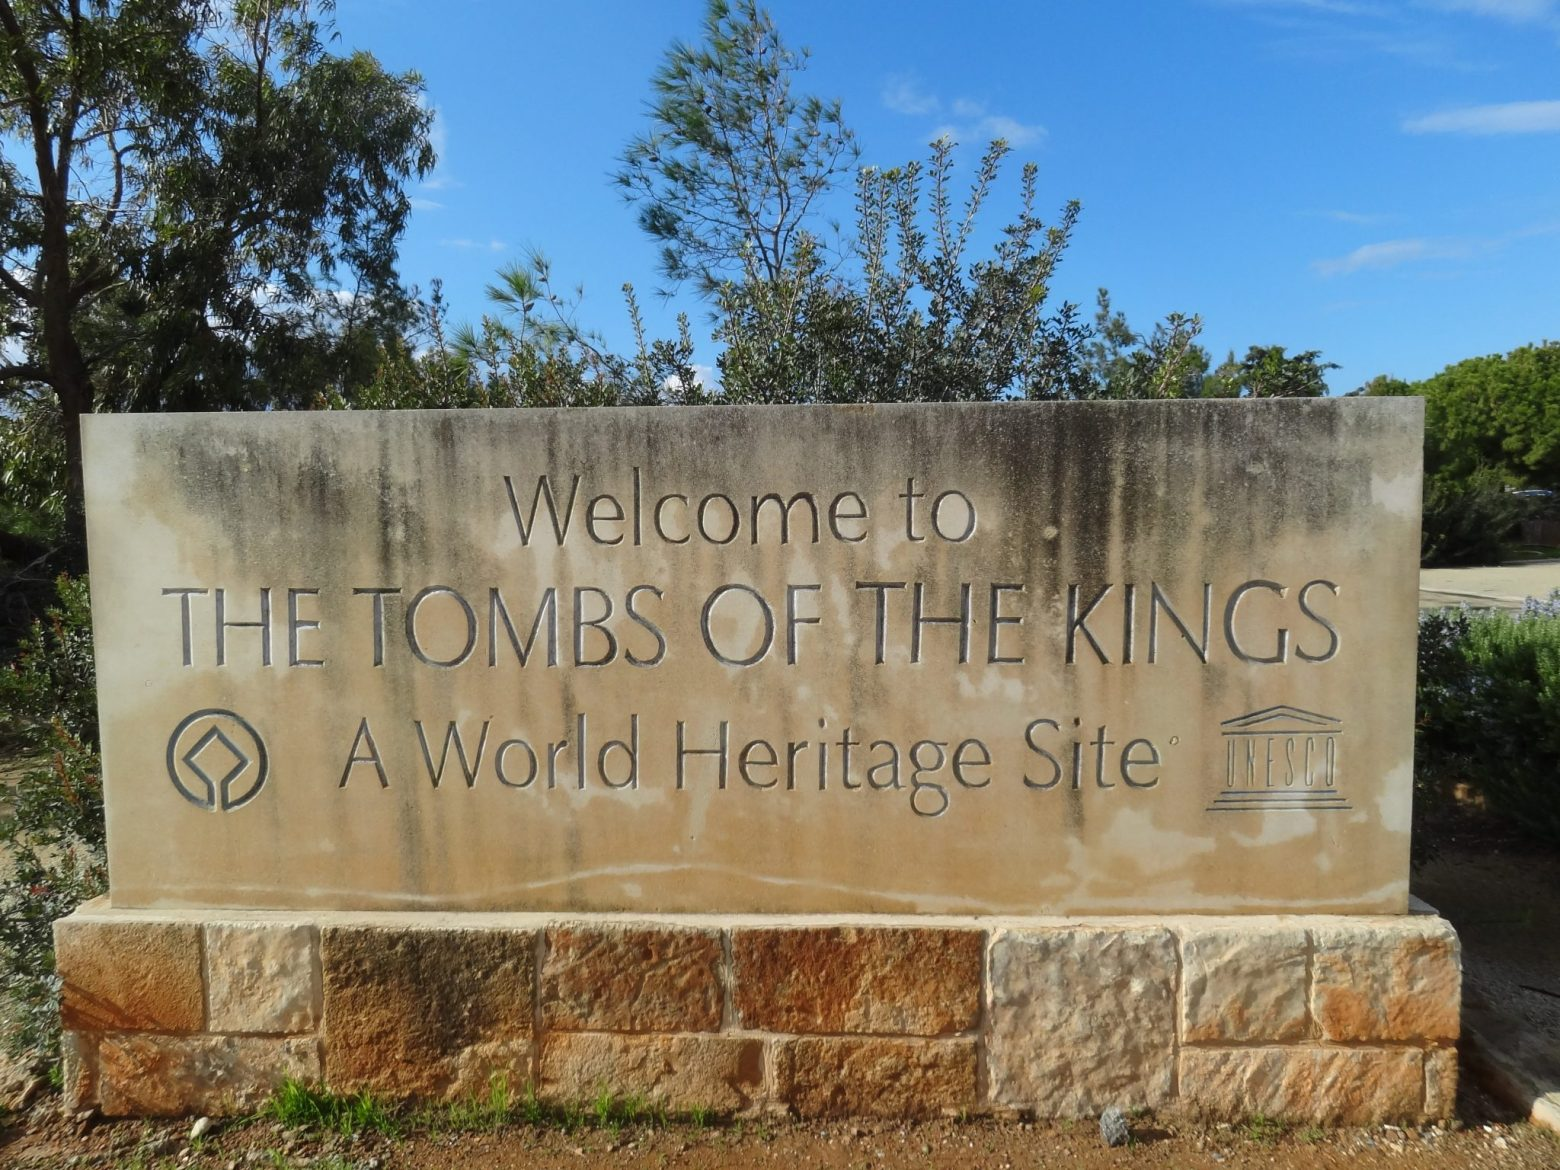 The Tombs of the Kings: Paphos